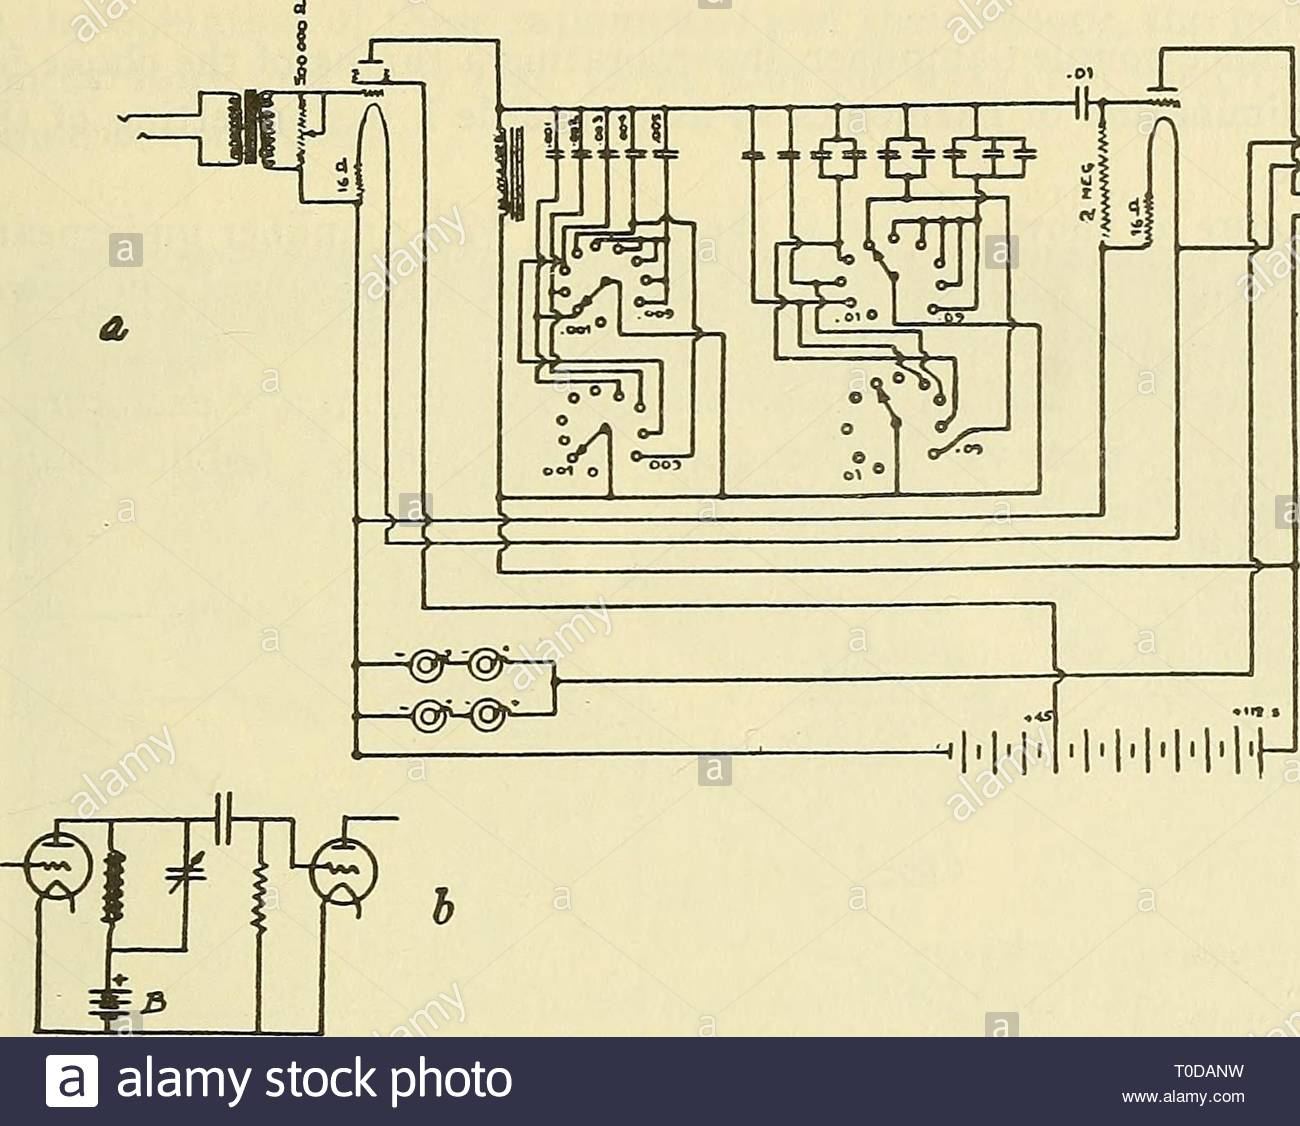 hight resolution of wiring diagram stock photos wiring diagram stock images alamy co 29 mic wiring co circuit diagrams